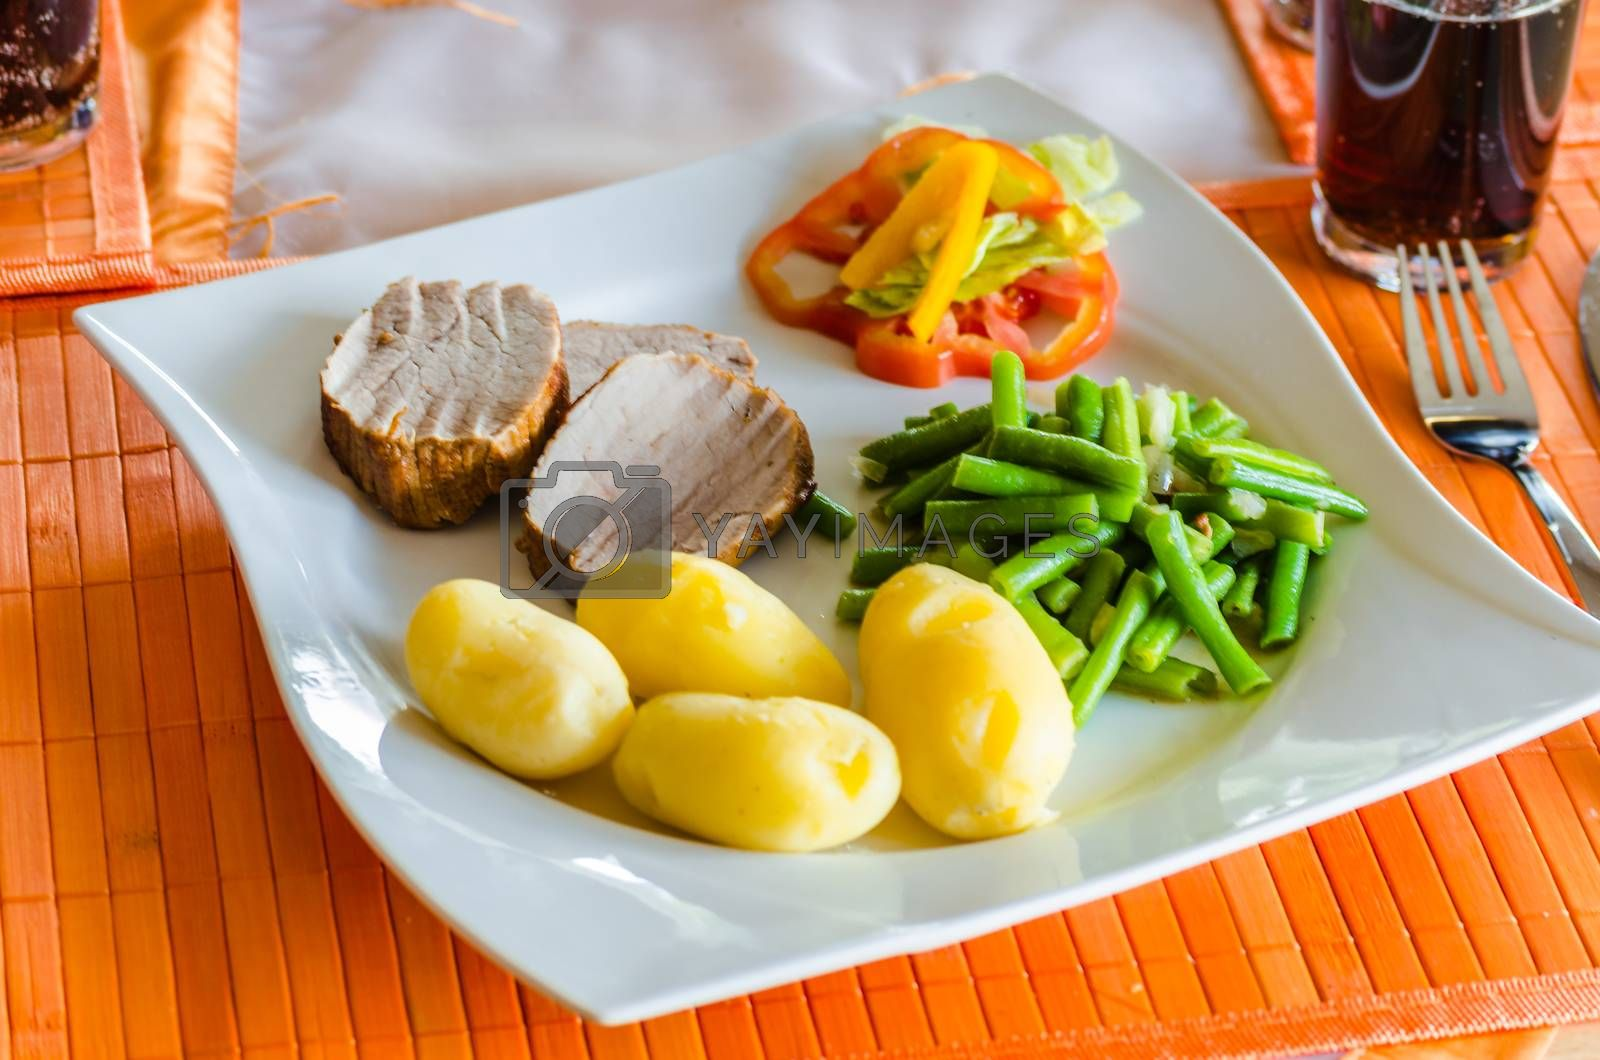 Fresh roast pork with potatoes on a white plate.